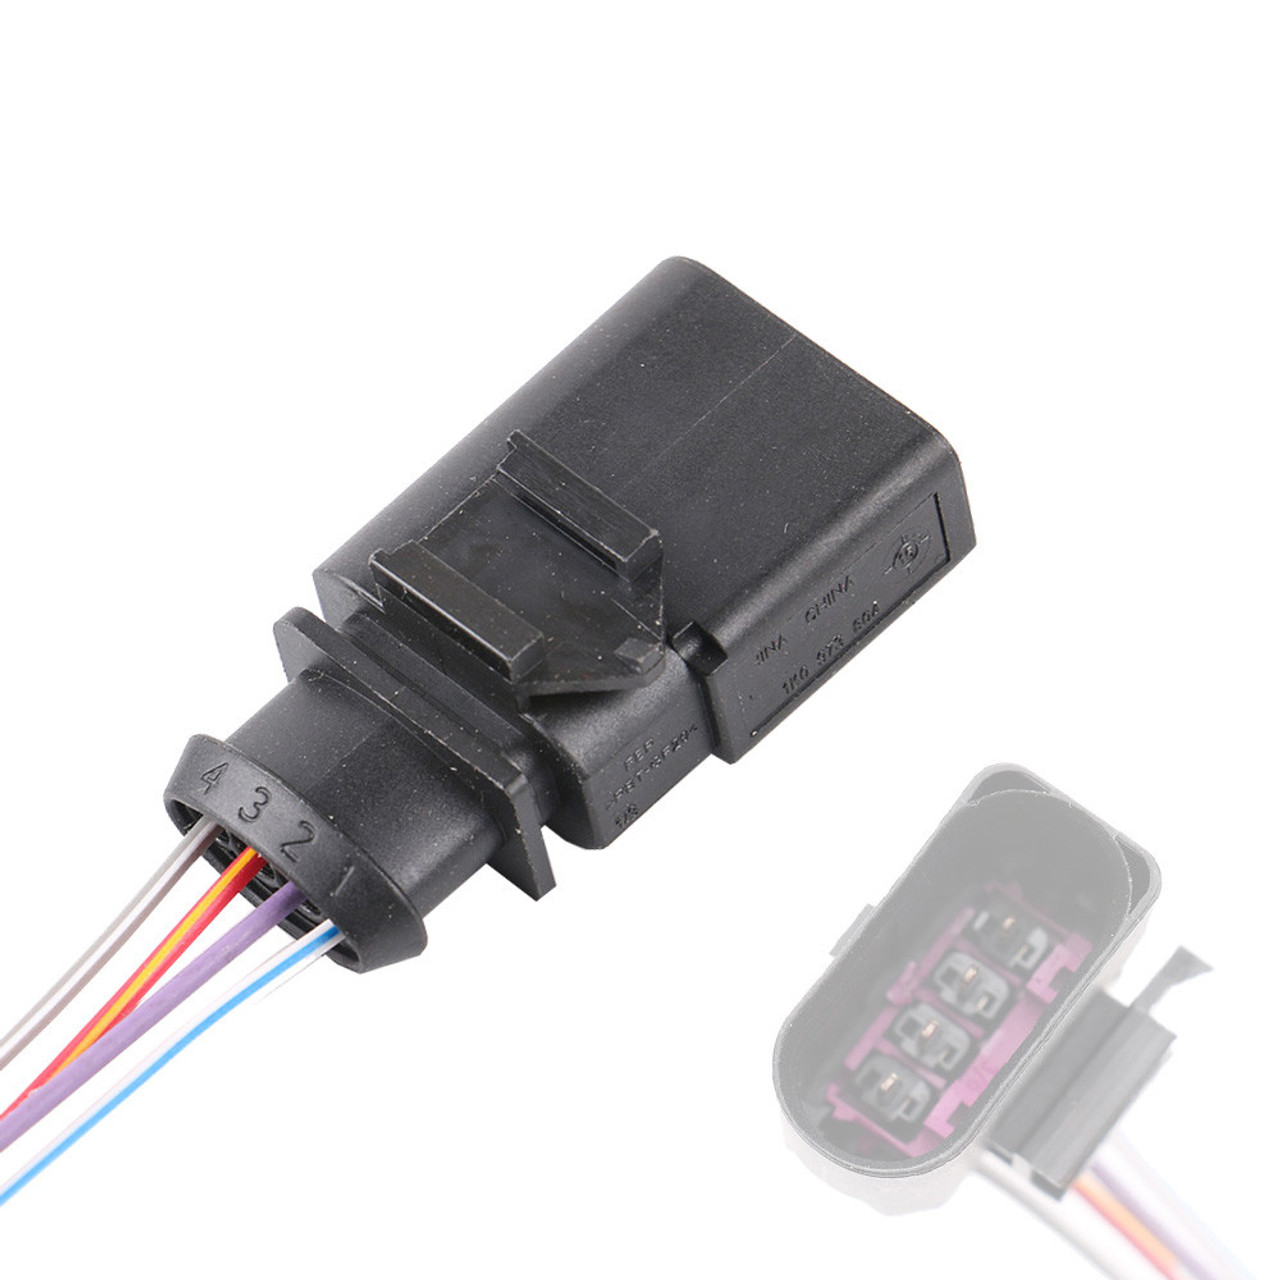 4 Pin Pressure Sensor Male Connector Pigtail for VW Audi 1K0973804  Pin Wire Harness Pigtail on